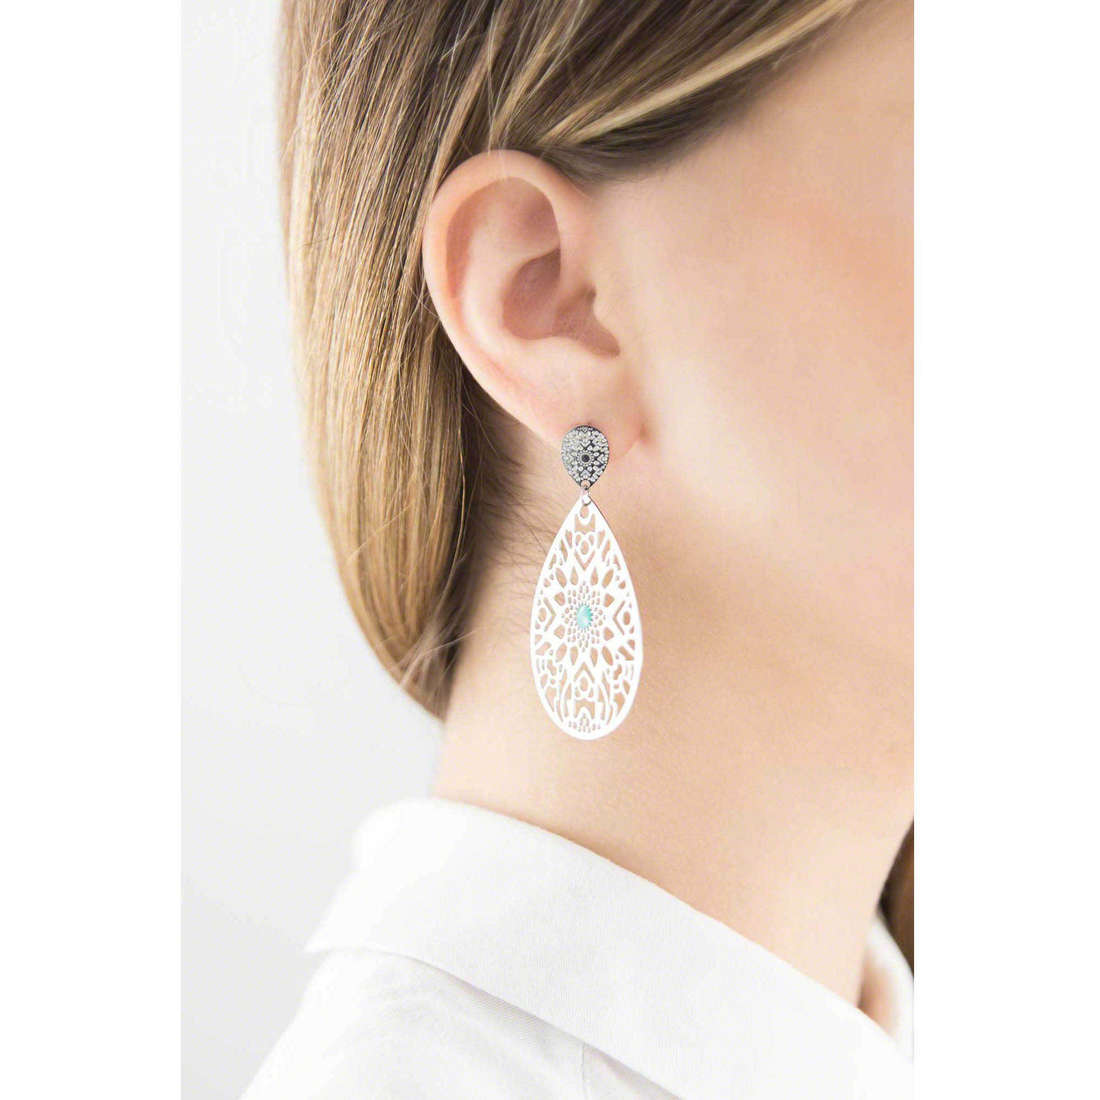 Marlù boucles d'oreille Woman Chic femme 2OR0024 indosso